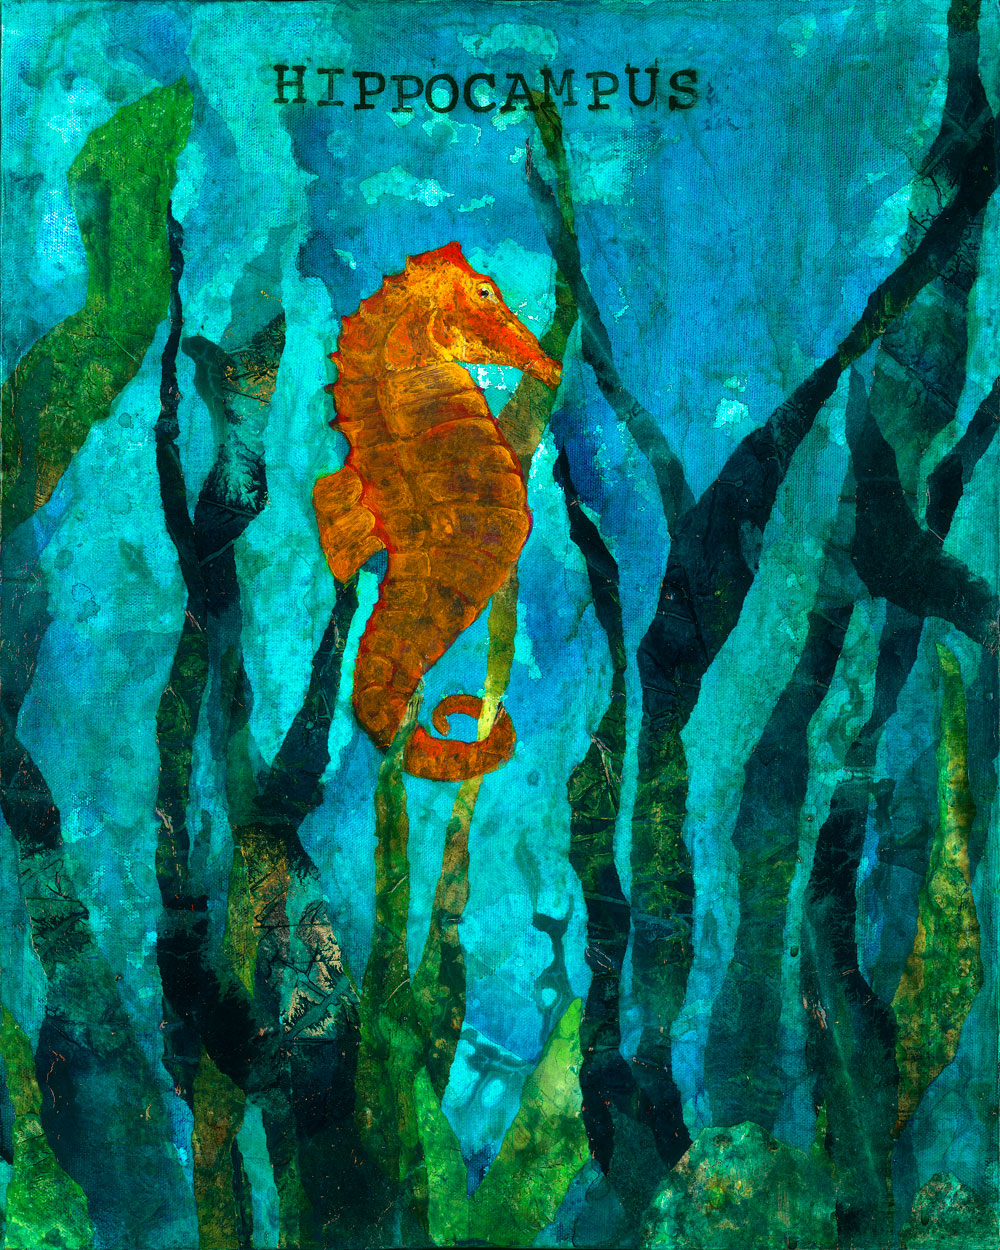 Hippocampus, Seahorse   ORIGINAL AVAILABLE 20x16 Mixed Media on Canvas